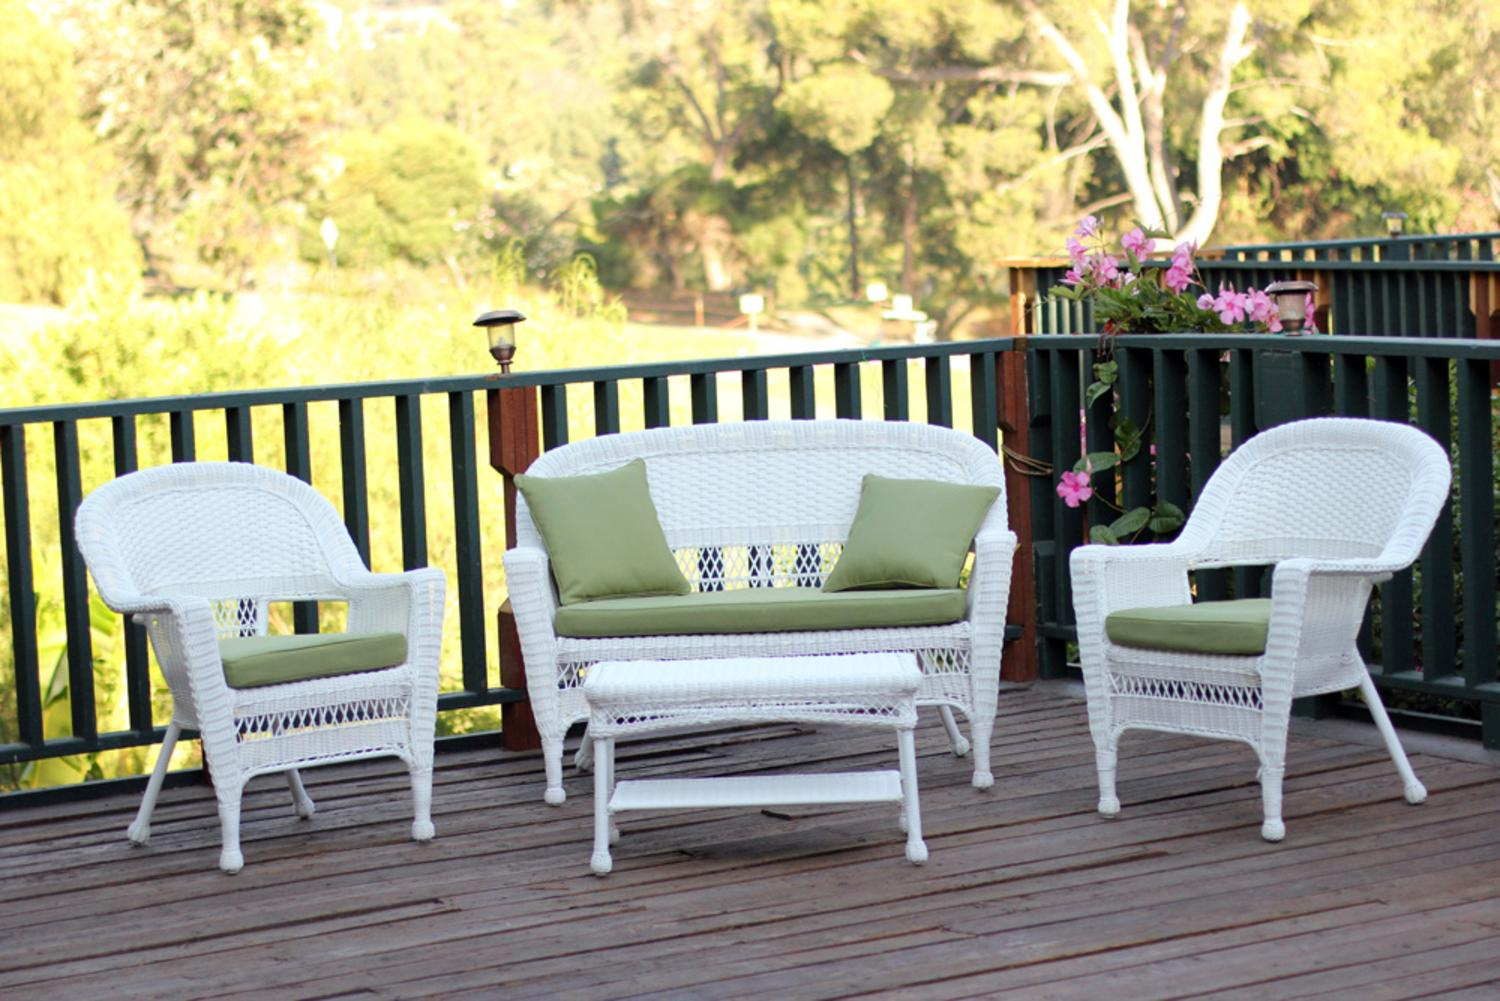 4-Piece Ryder White Wicker Patio Chair, Loveseat & Table Furniture Set Green Cushions by CC Outdoor Living